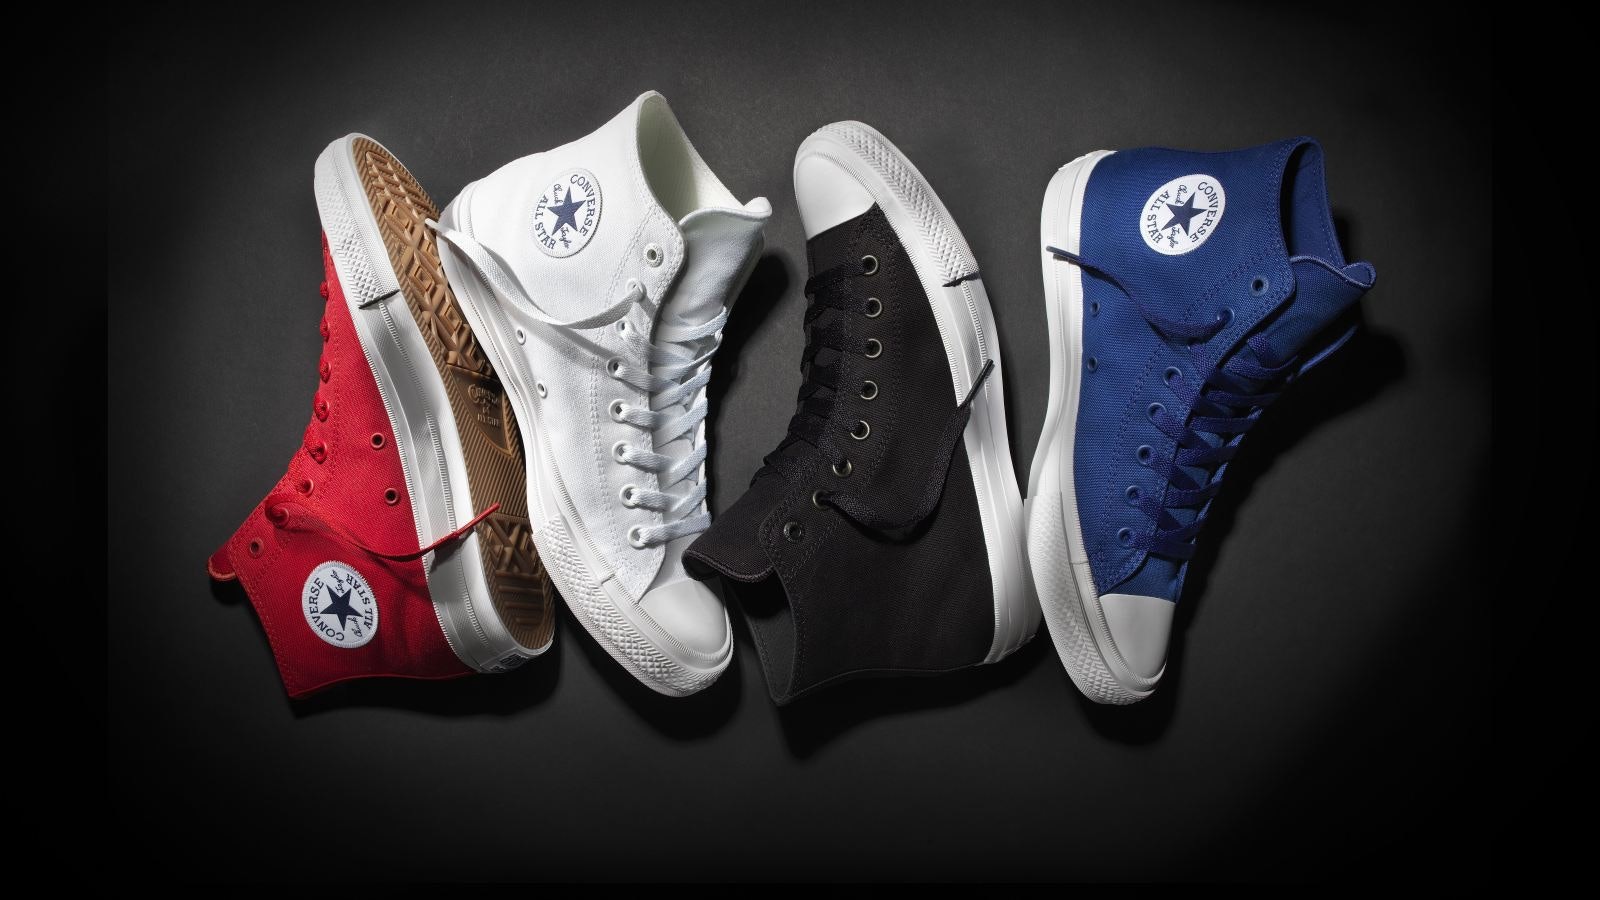 Converse Finally Went and Fixed the Biggest Problem With Chuck Taylors